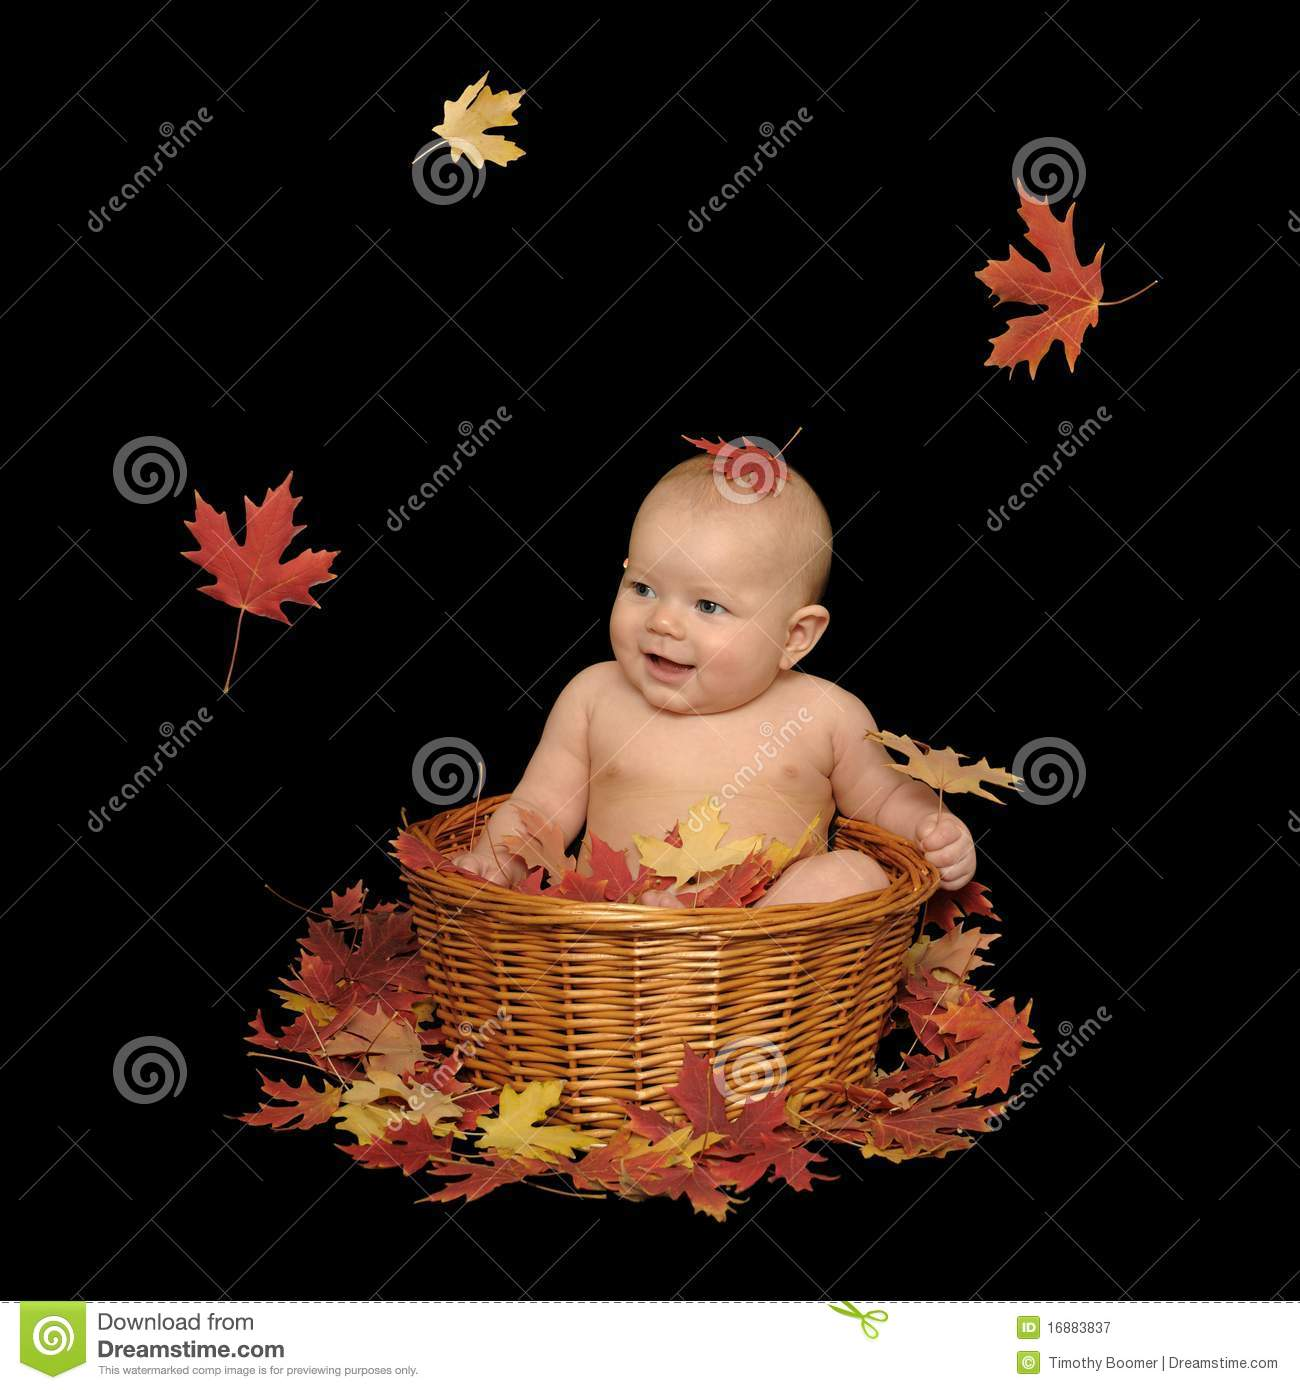 Adorable baby girl sitting in a basket with fall leaves isolated on a black background all of the leaves are real including the three in the air